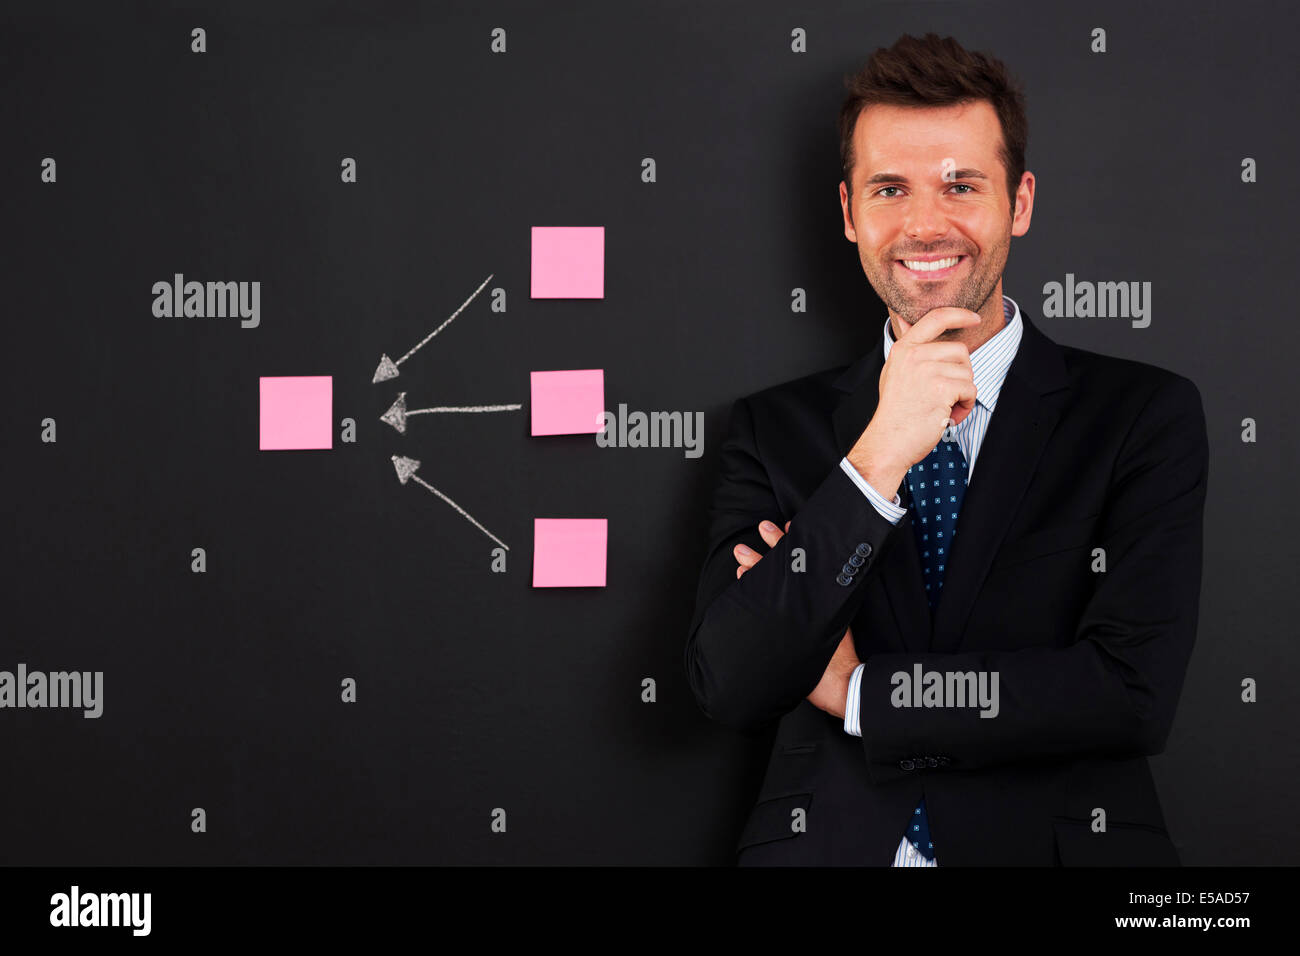 Businessman standing close to diagram from sticky note, Debica, Poland - Stock Image